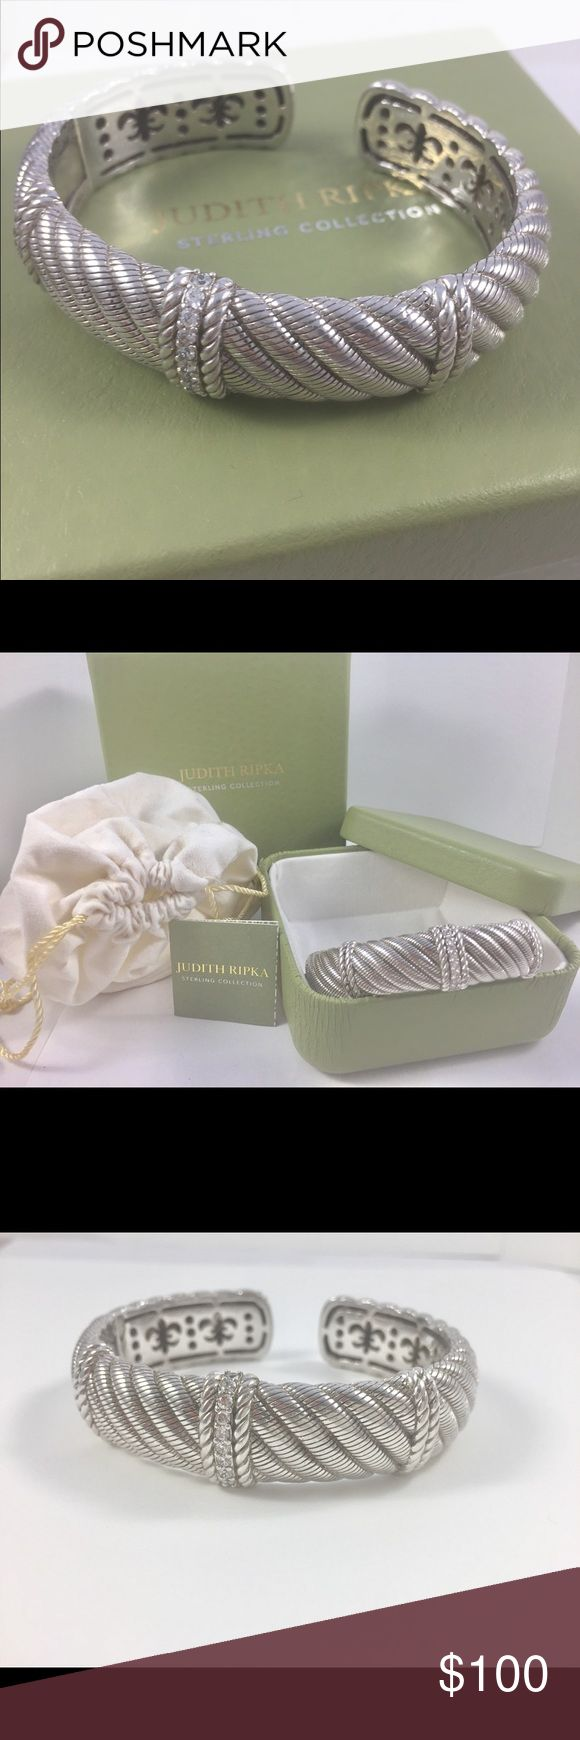 """NWT Judith Ripka SS .925 fashion bracelet with czs NWT includes inner & outer boxes, dust bag, fold-out brochure. .925 sterling silver bracelet. Very heavy, 78 grams, 3/4 inches wide with a hinge. An employee found this misplaced while cleaning my stockroom. Still new and in the box. The bracelet is 8 1/2  from tip to tip. The inside measurements are 2"""" in width and 2.5"""" in length which is a size large. I'm offering this one at a great low price; however, the price is firm. This has cubic…"""